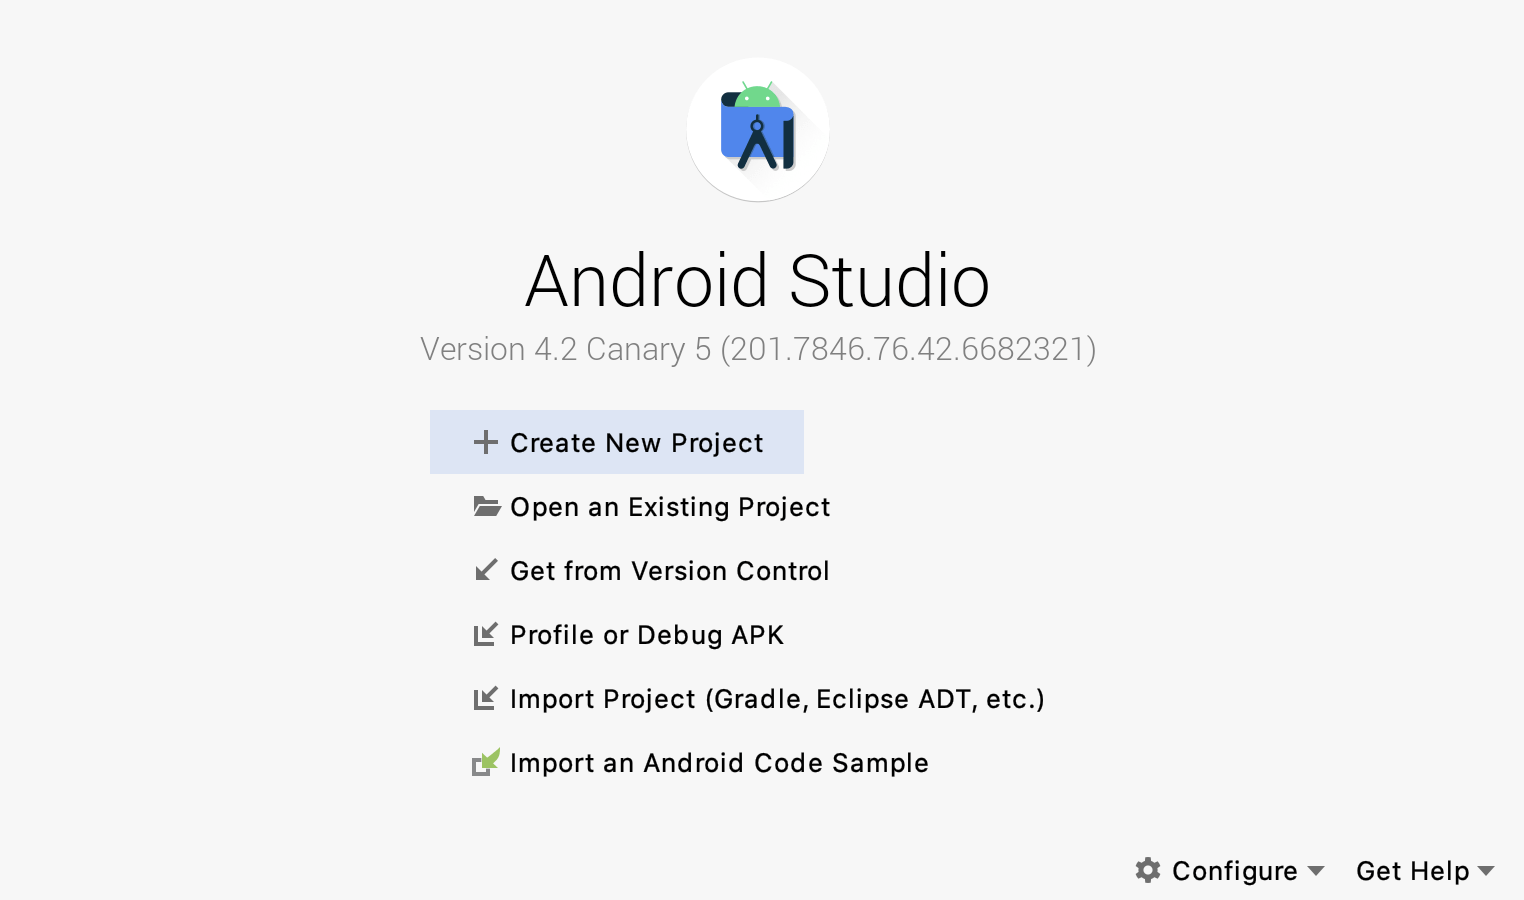 Android Studio beginning page